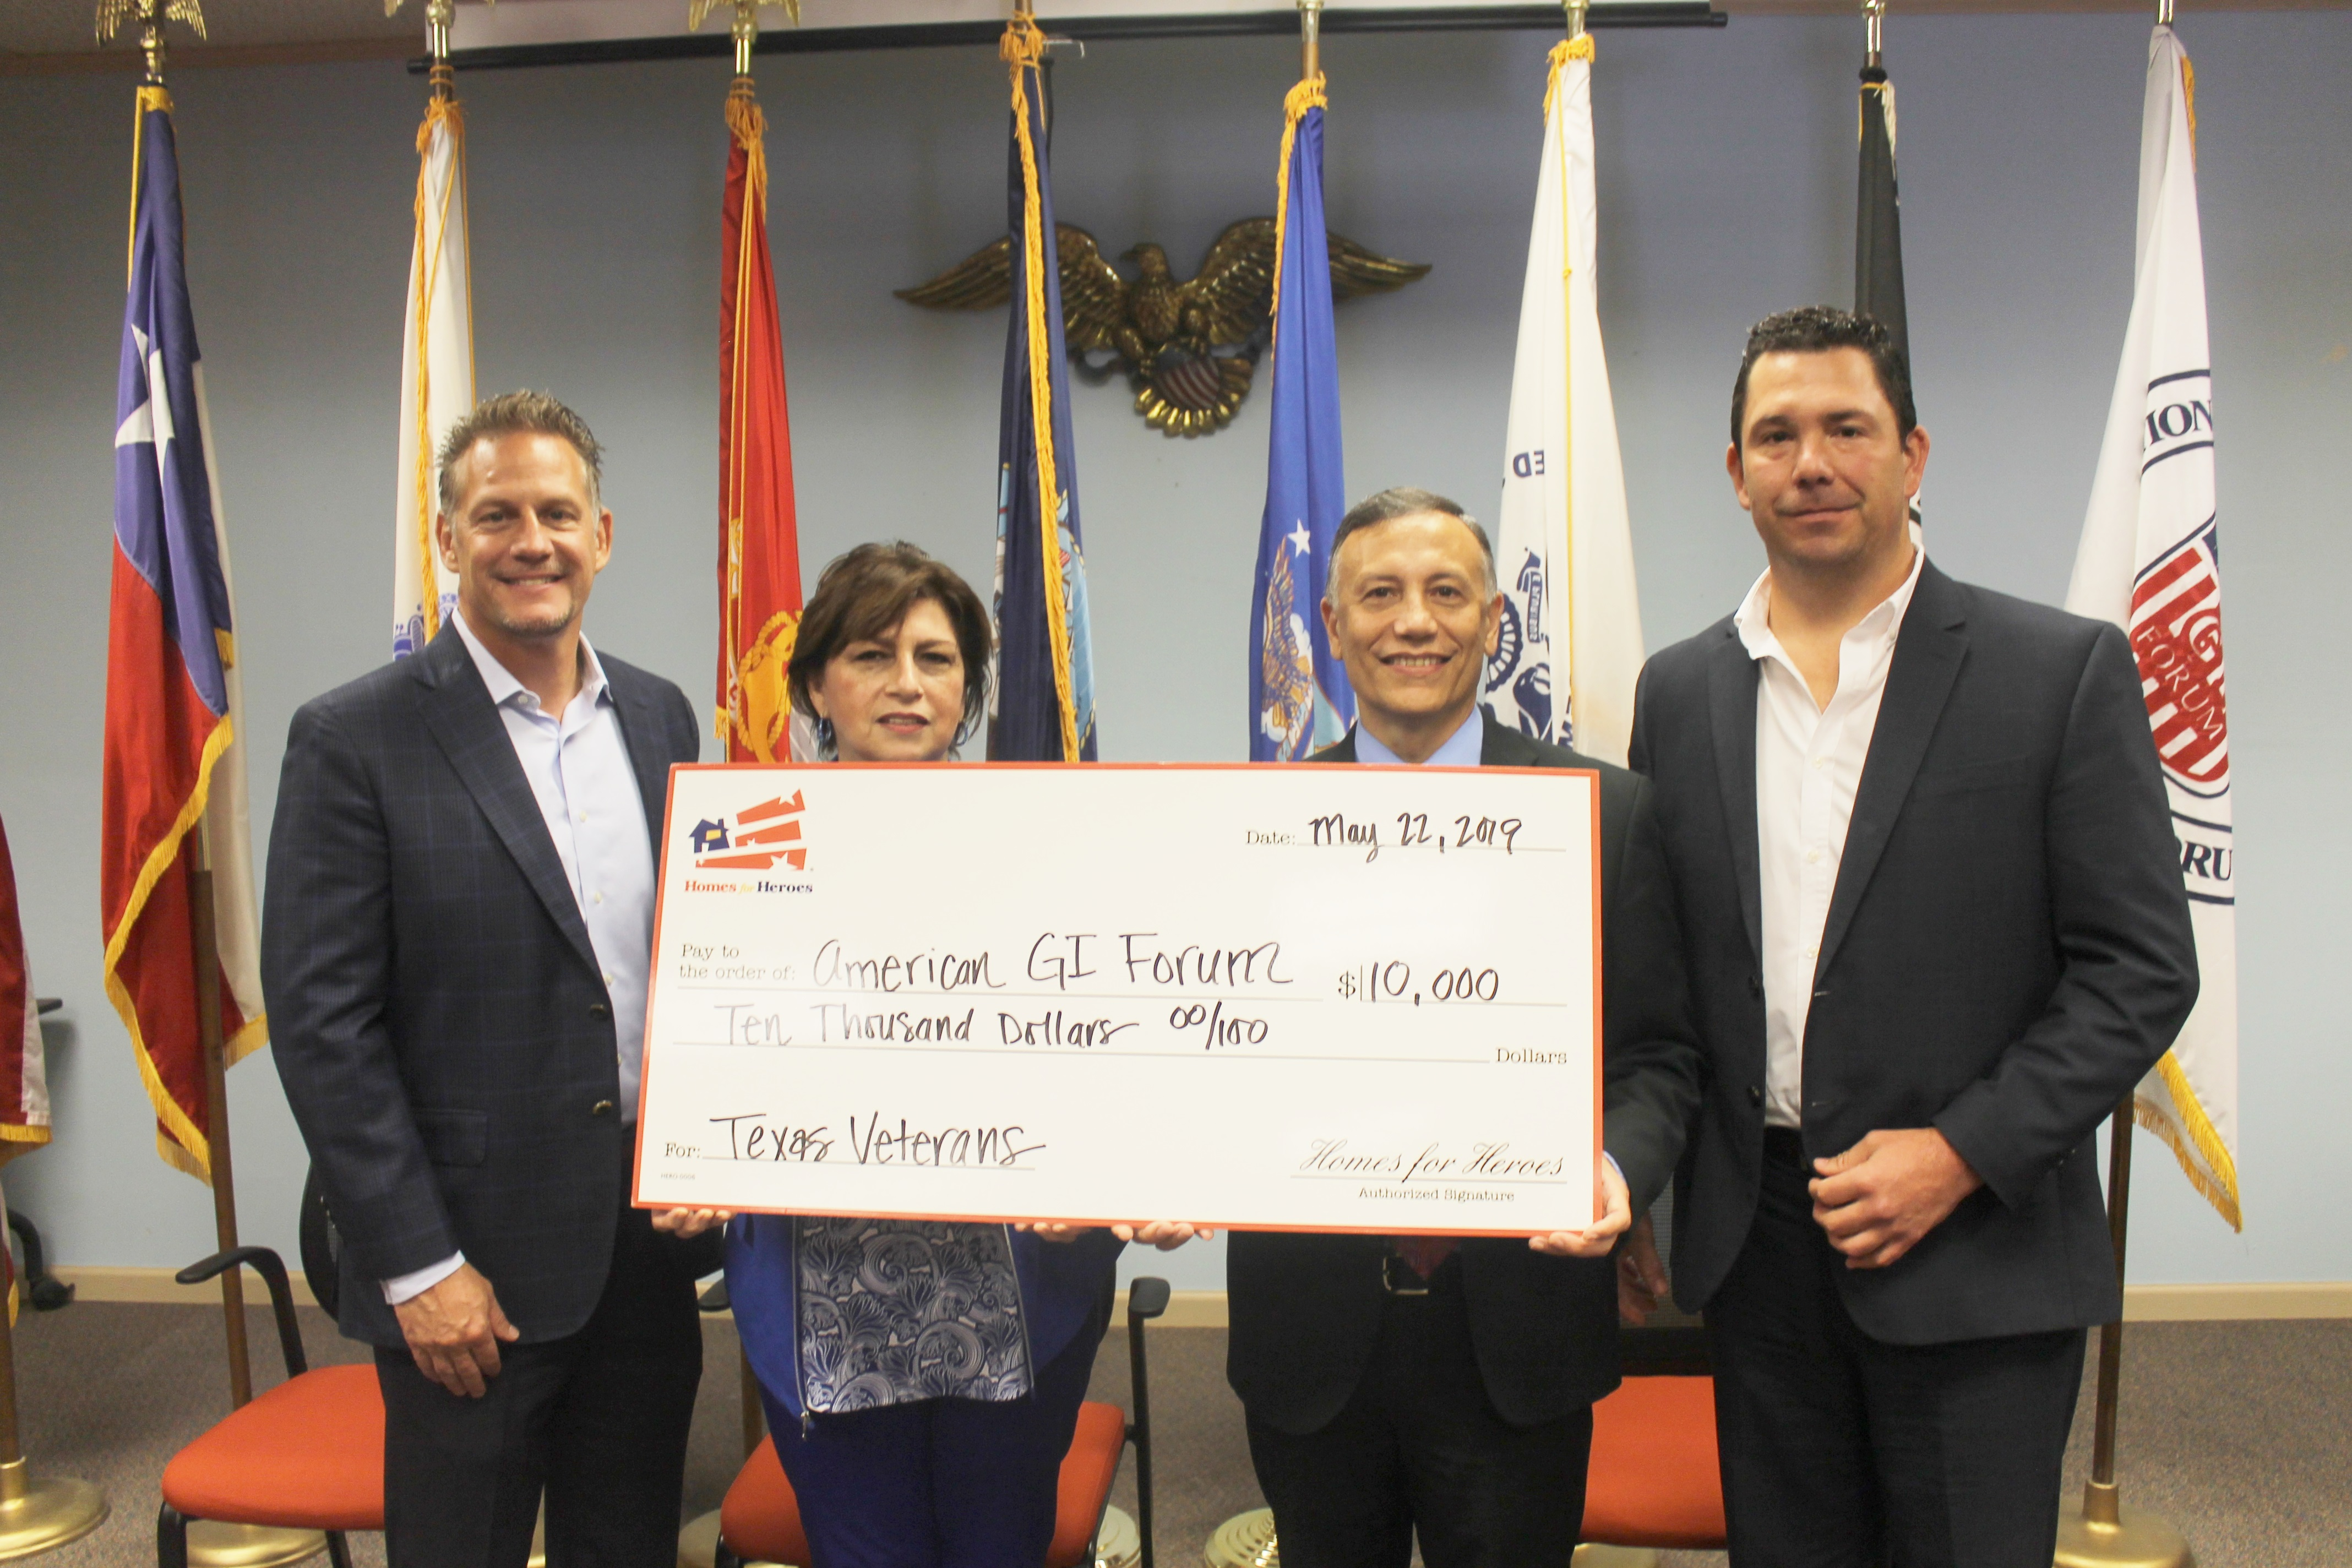 Homes For Heroes Foundation Supports Homeless Veterans with $50,000 Donation